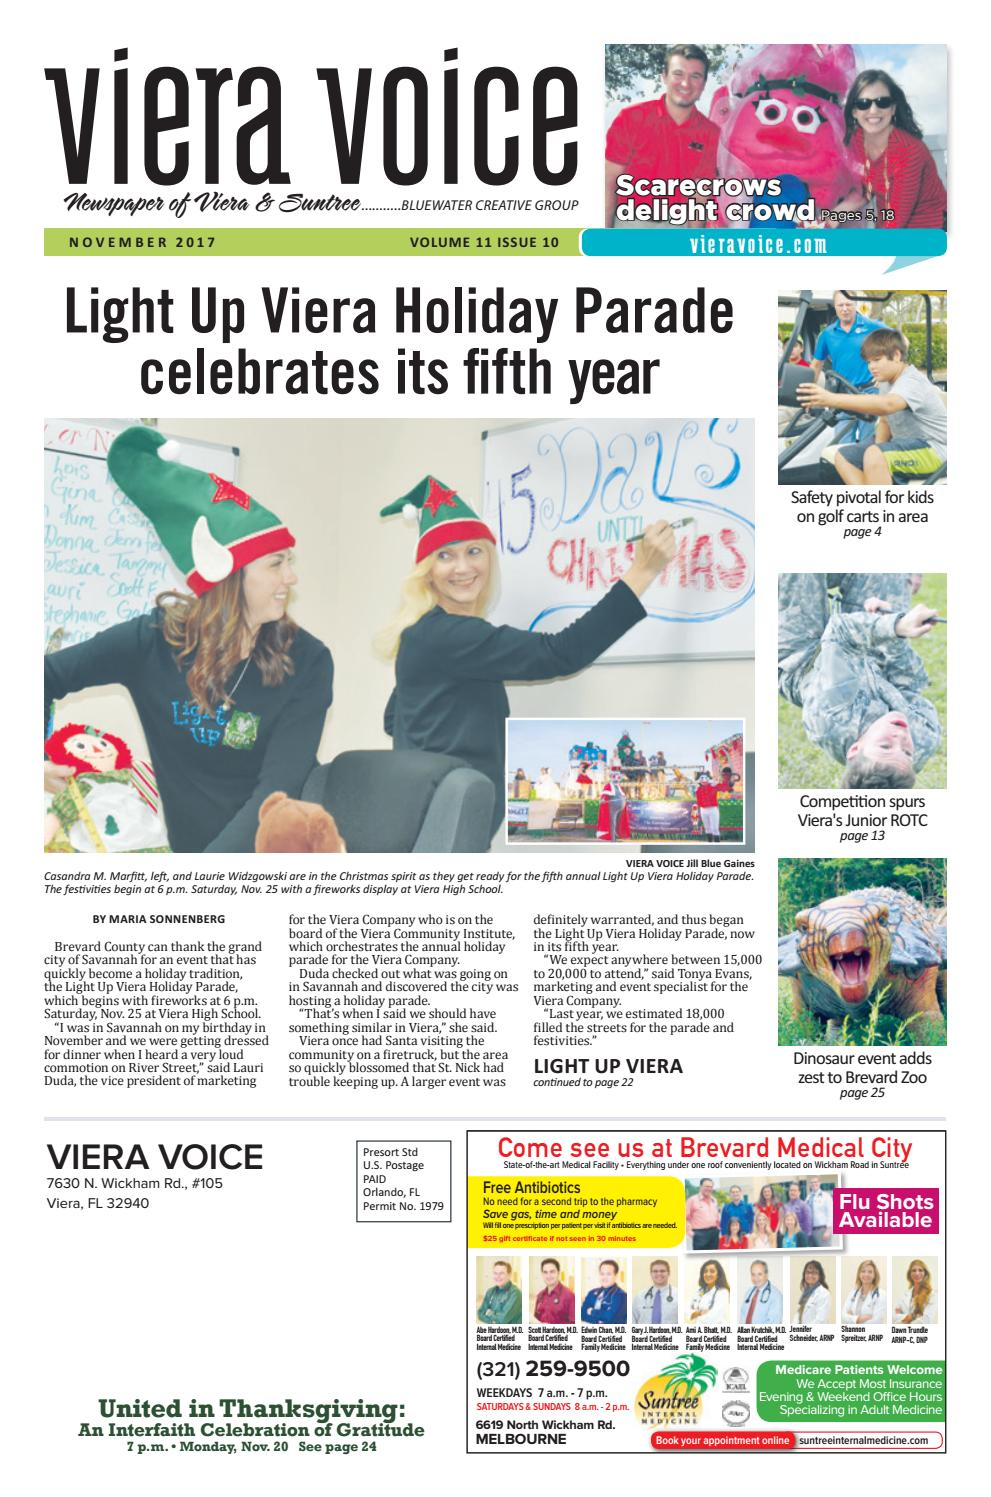 cdbfc4774fb Viera Voice November 2017 by Jill Gaines - issuu